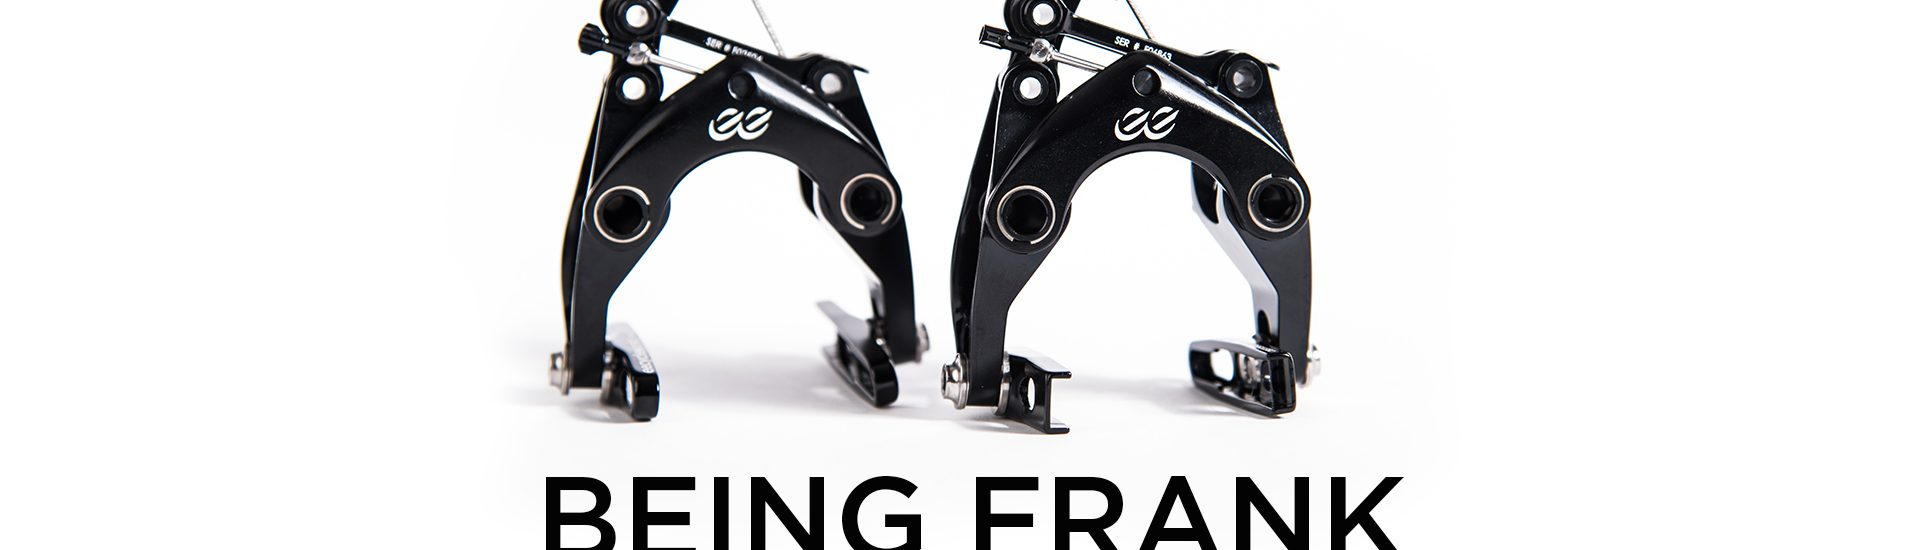 Being Frank: Rim Brakes In A Disc Brake World